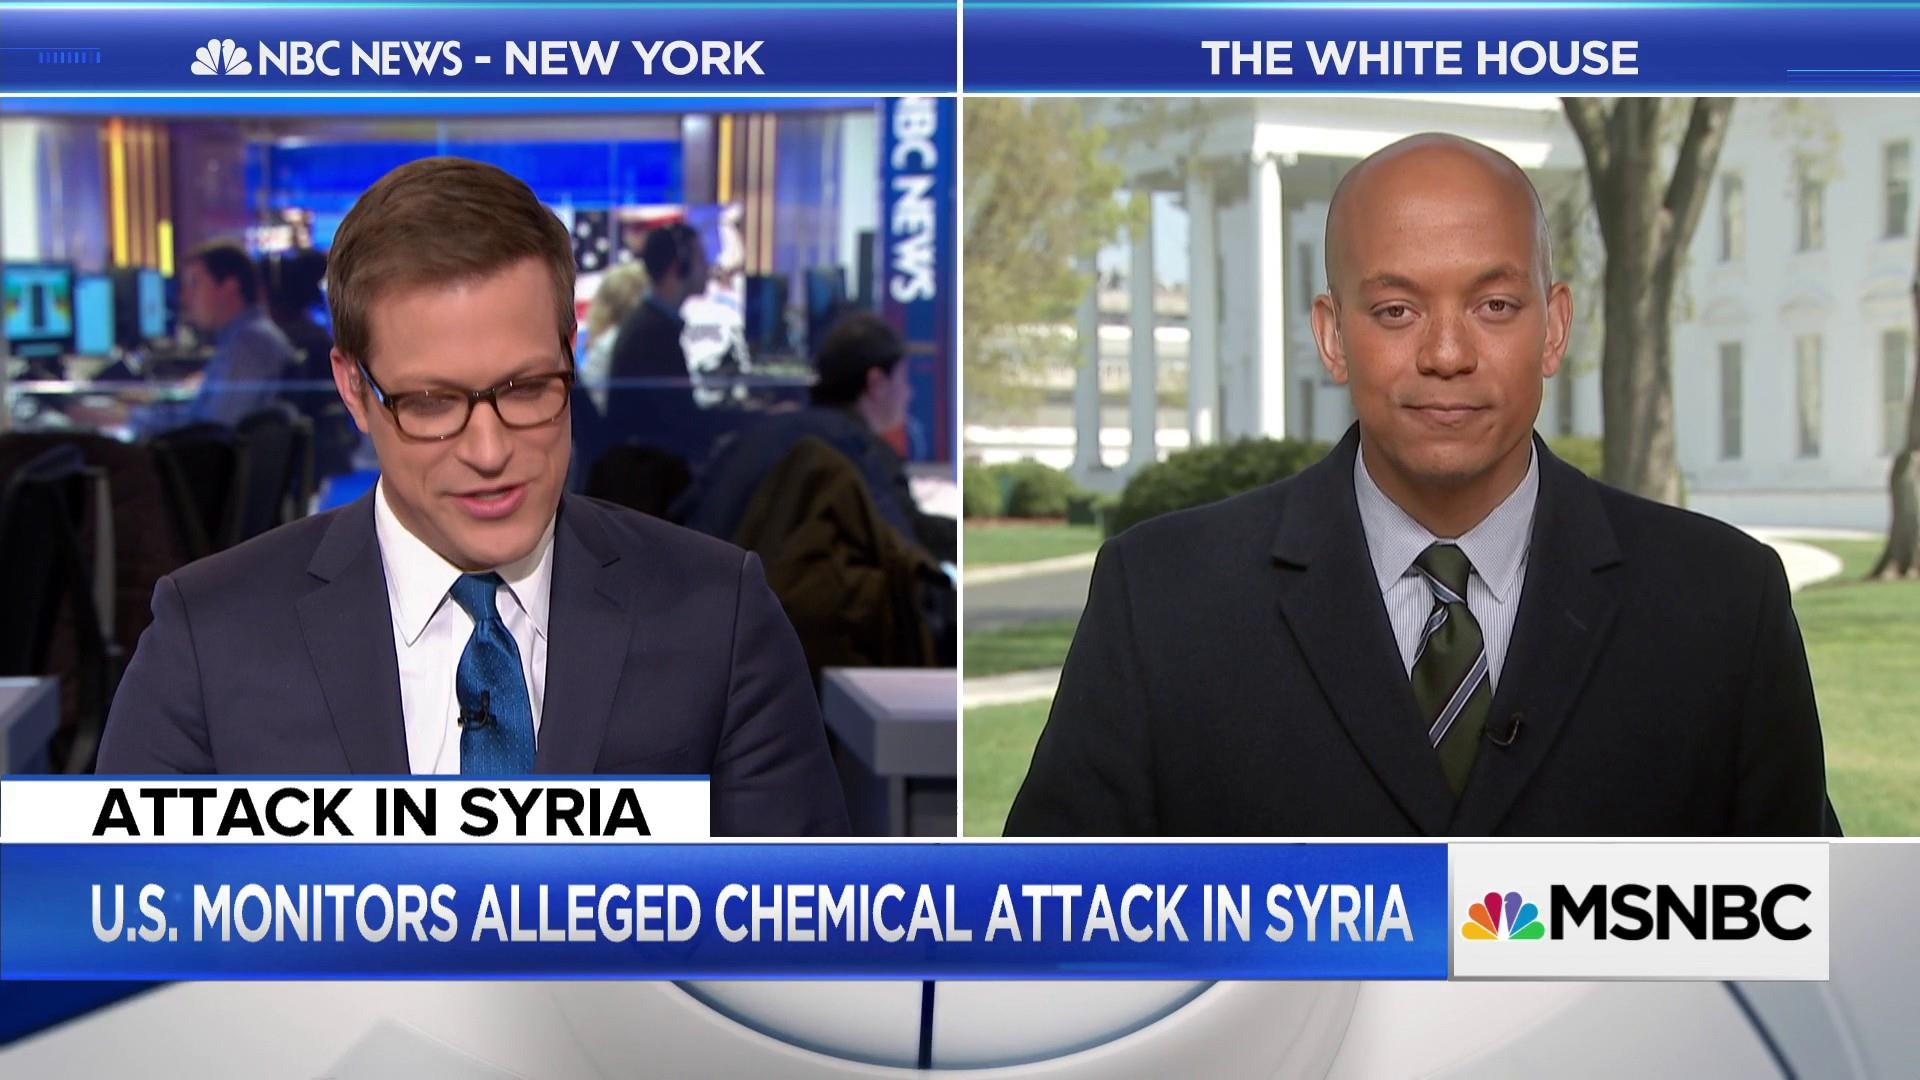 Hagar Chemali on how the White House can respond in Syria